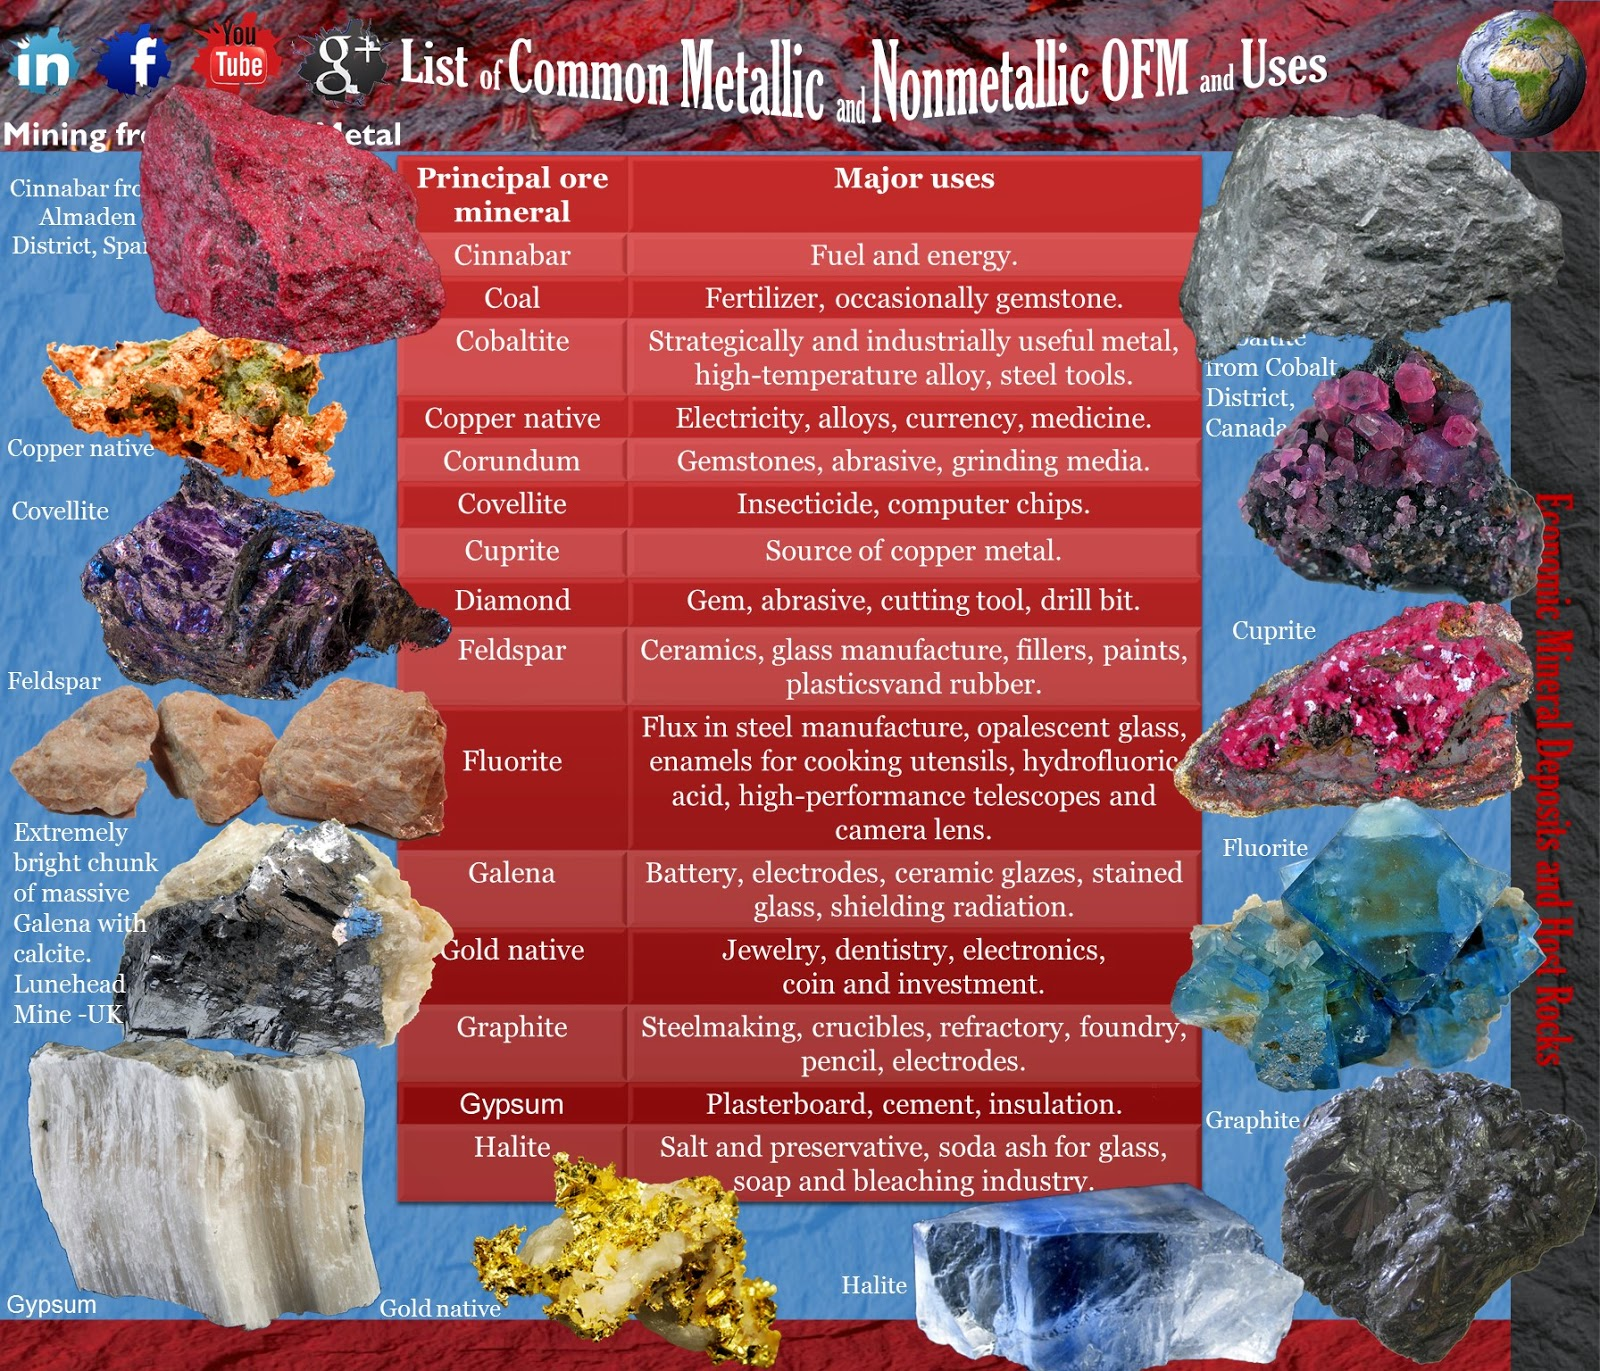 List of Common Metallic and Nonmetallic OFM and Uses 2